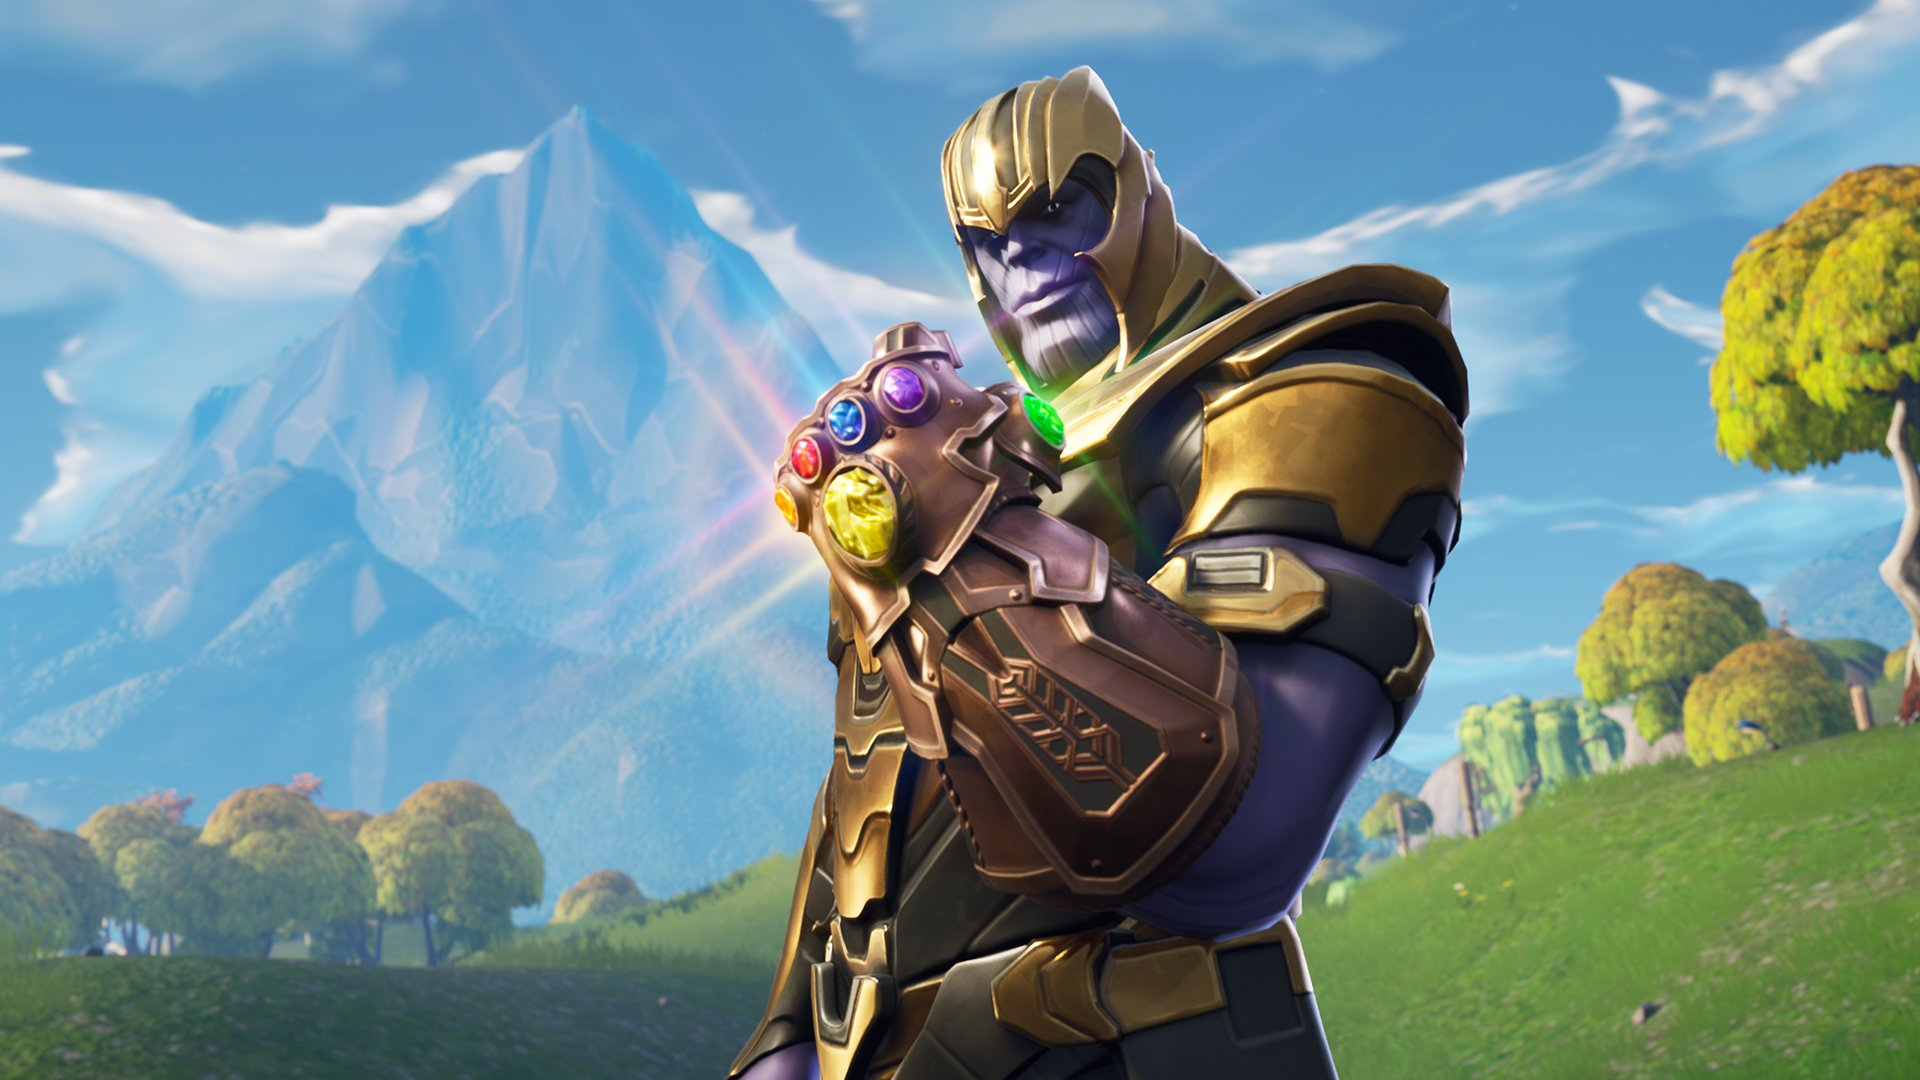 Fortnite Backgrounds Thanos 4041 Wallpapers and Stock Photos 1920x1080